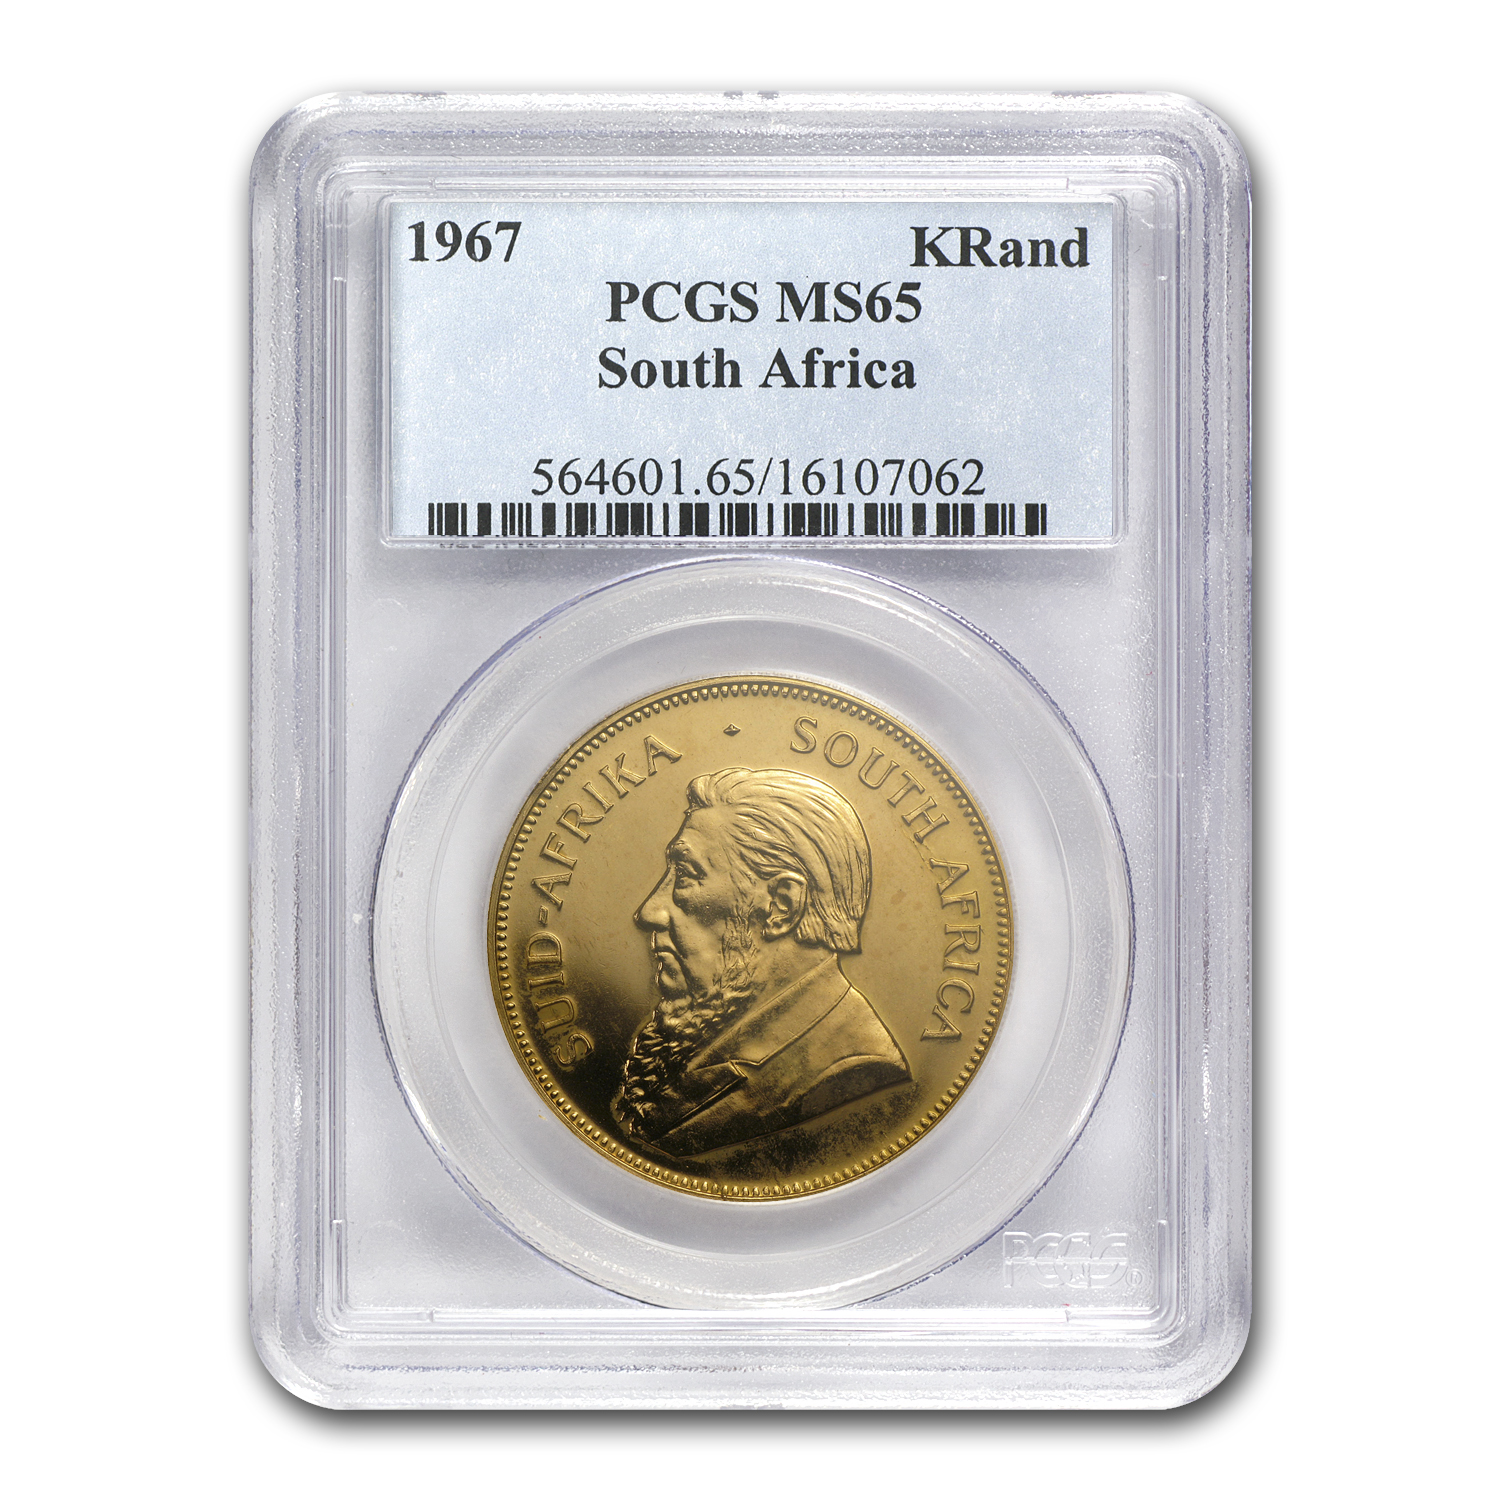 1967 South Africa 1 oz Gold Krugerrand MS-65 PCGS